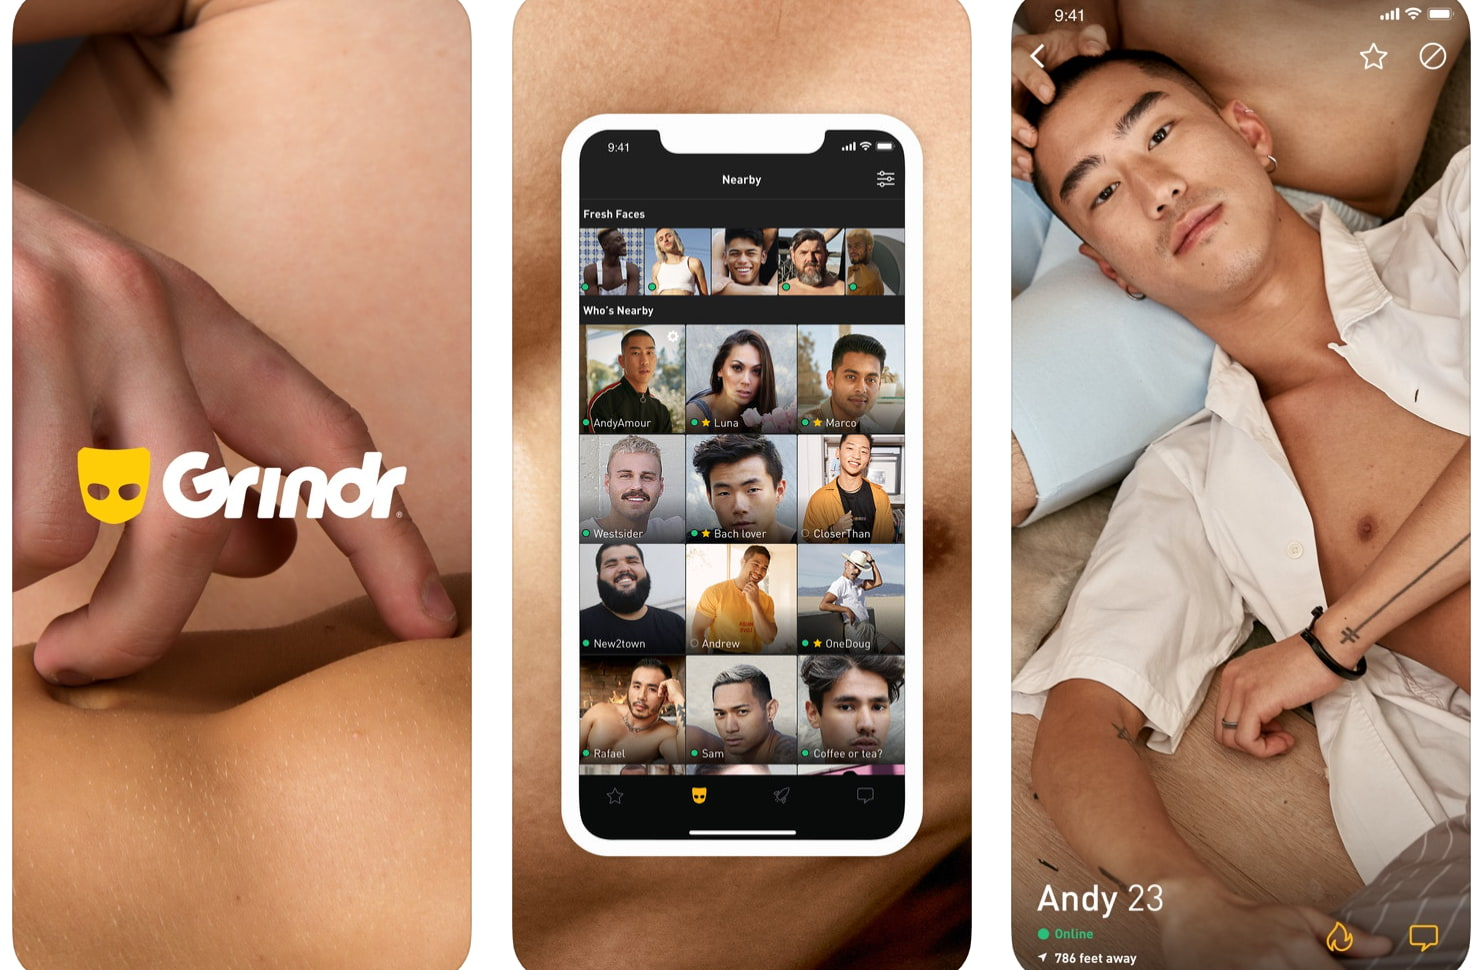 grindr, gay, dating, data